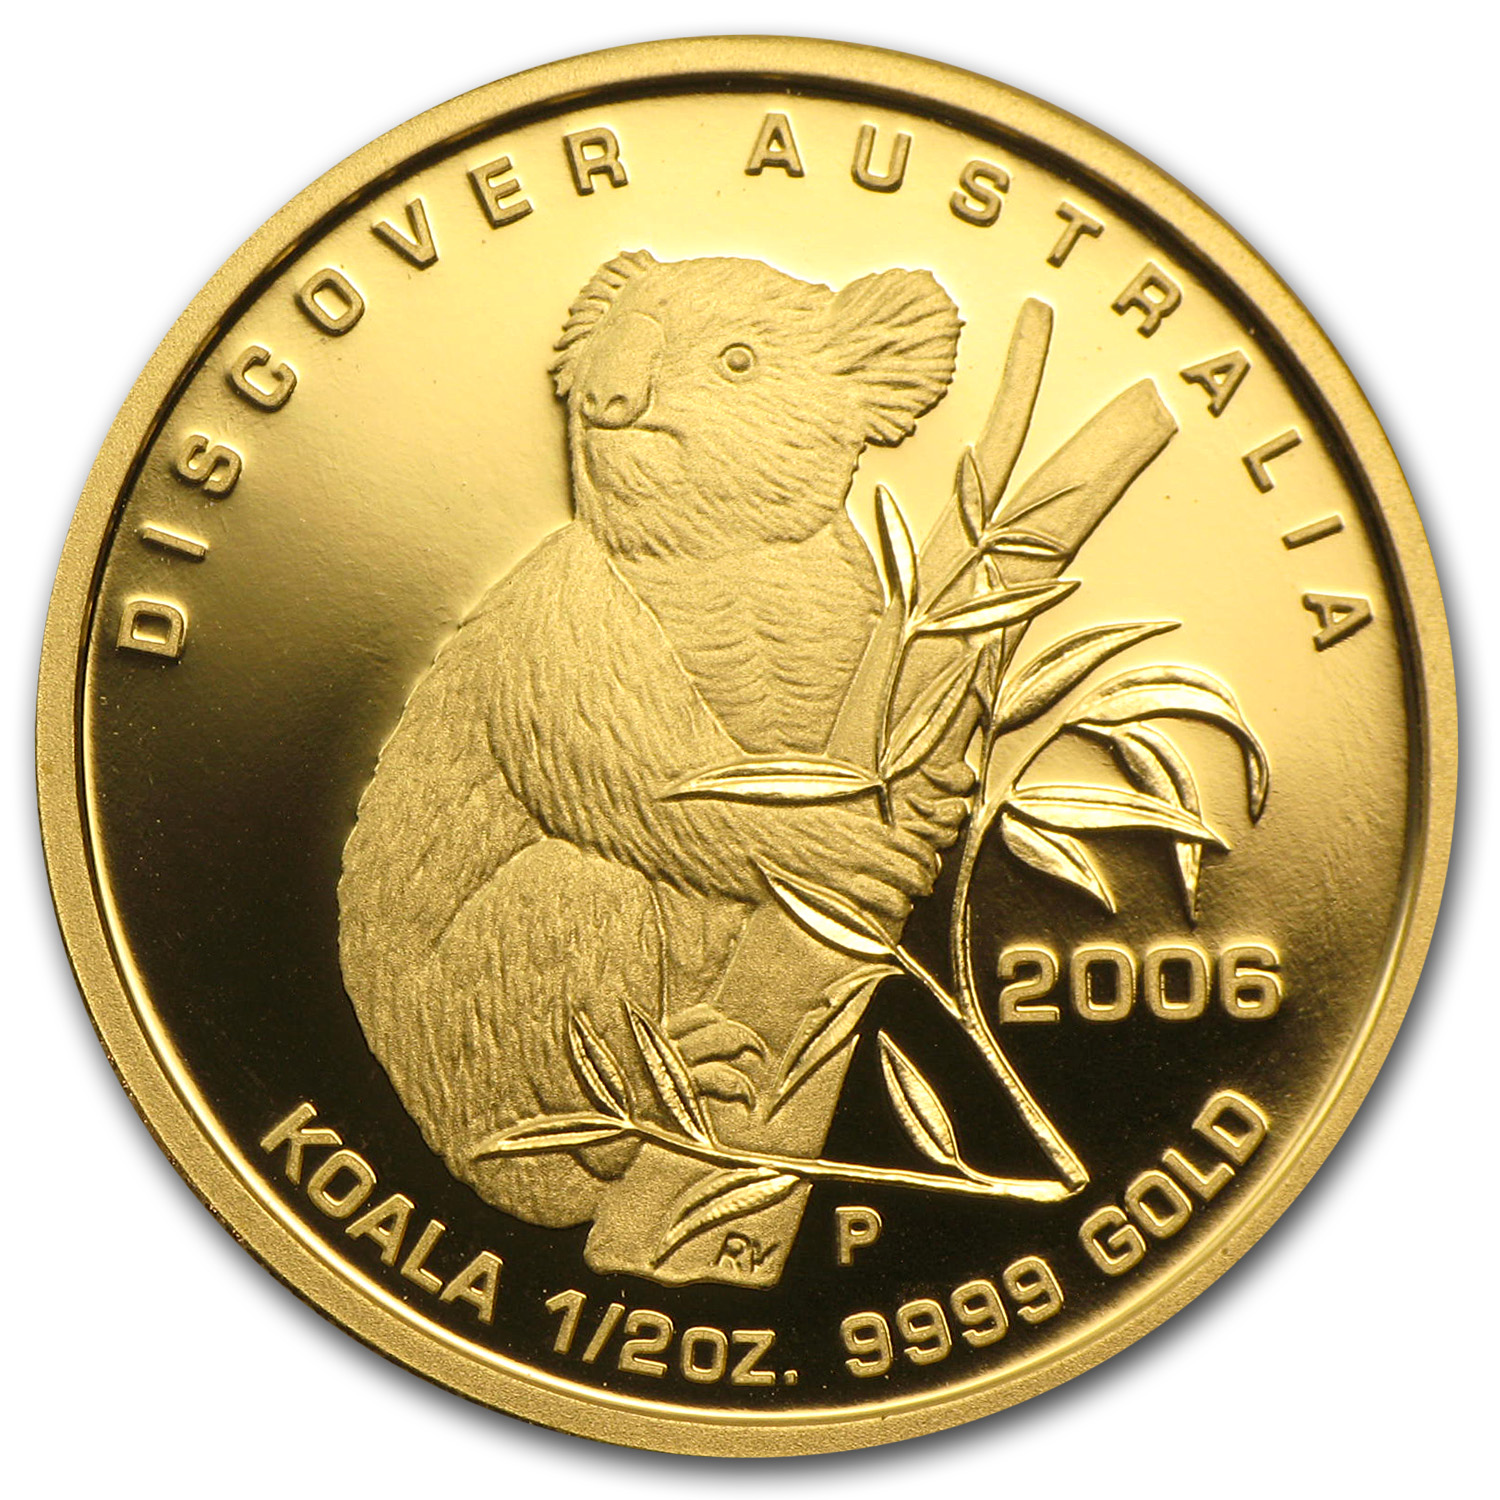 2006 1/2 oz Australian Gold Koala Proof (In Capsule)